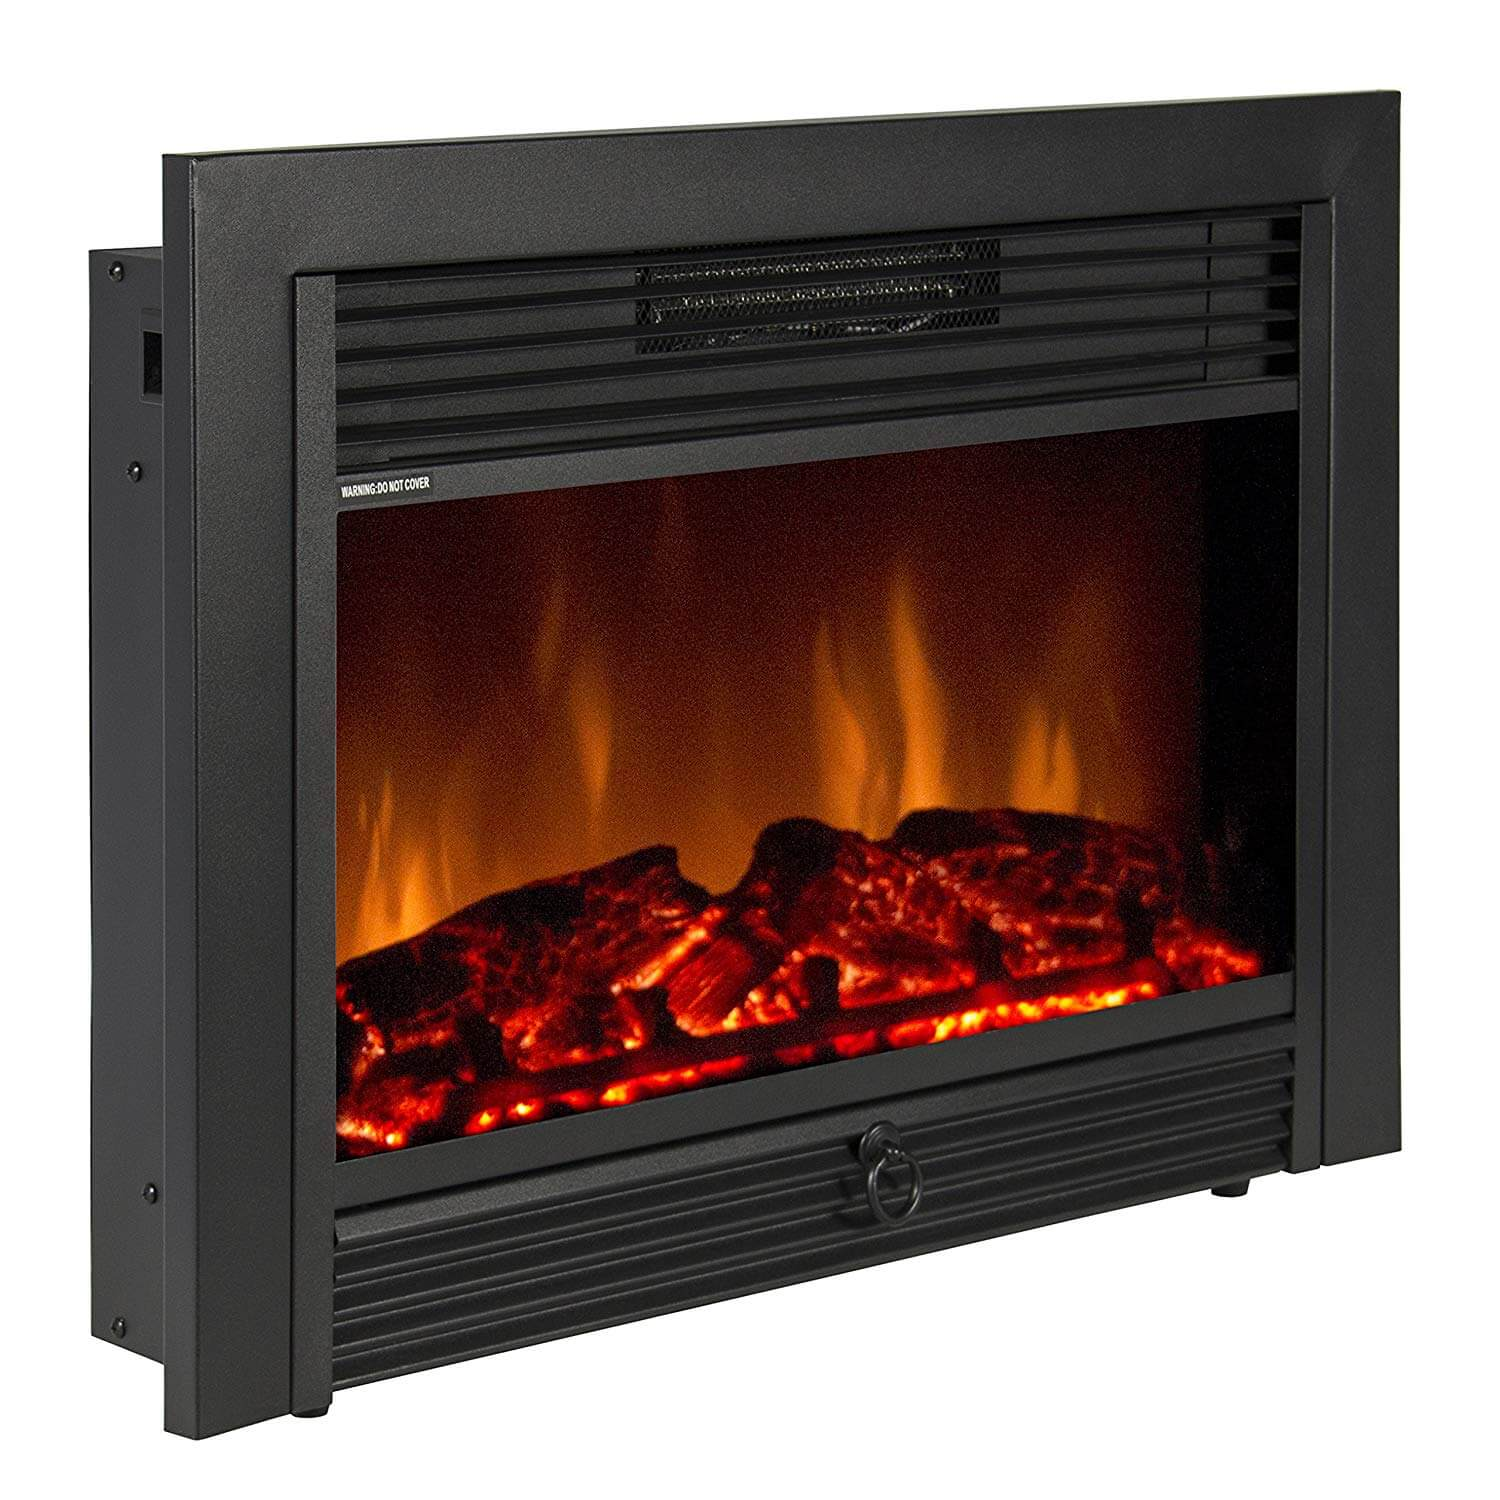 Top 10 Best Electric Fireplace Insert Review-13